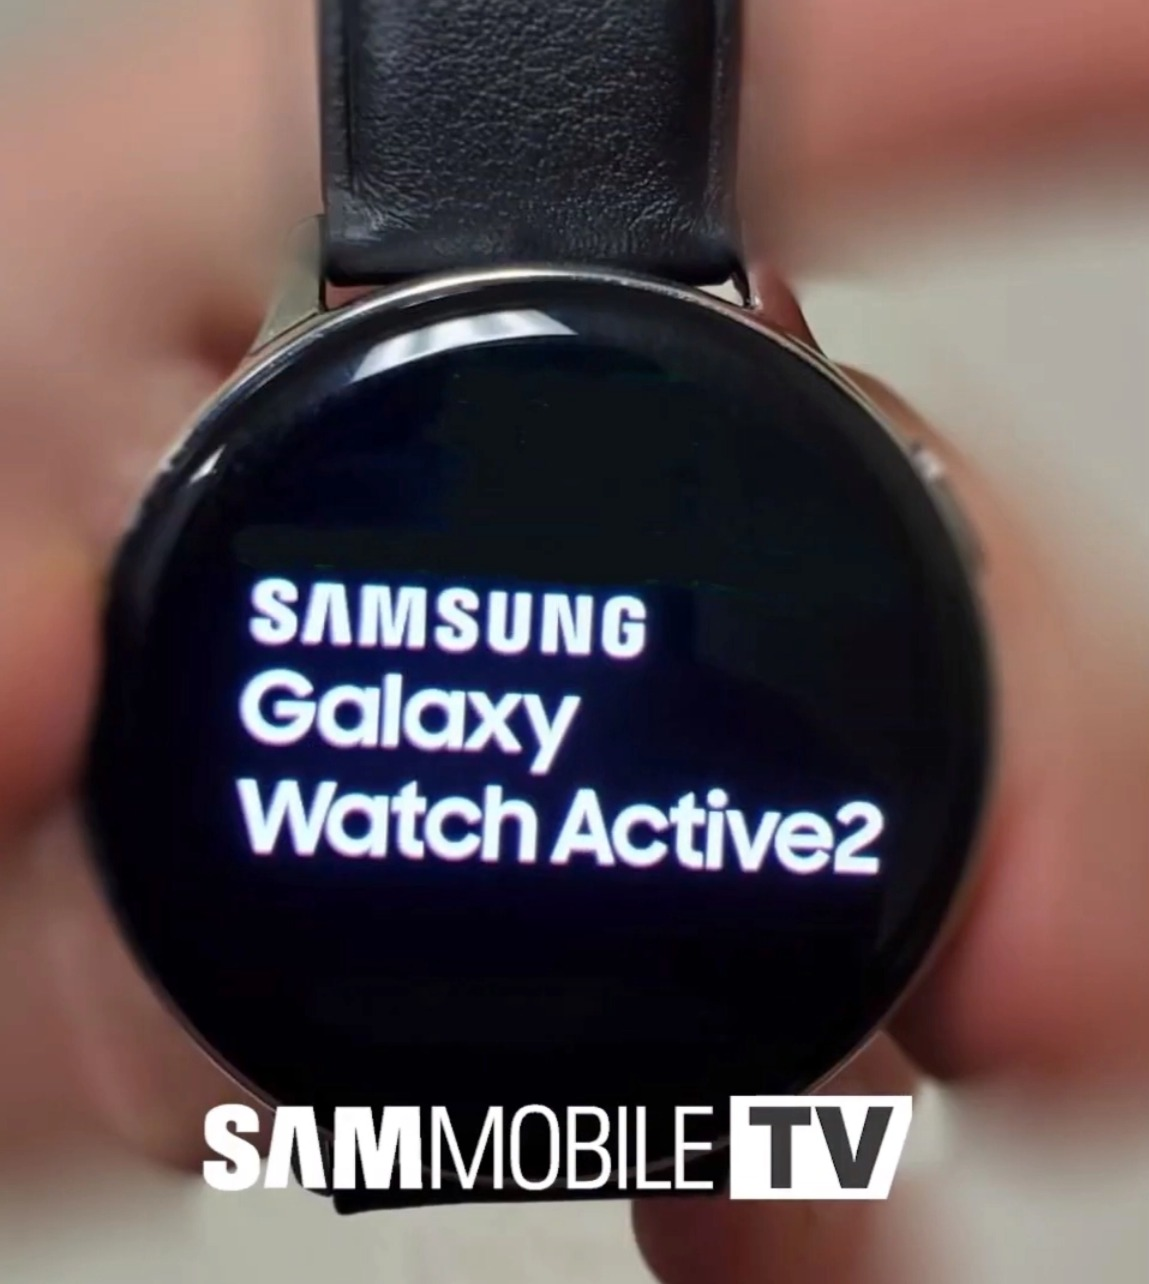 Samsung Galaxy Watch Active 2 Leak